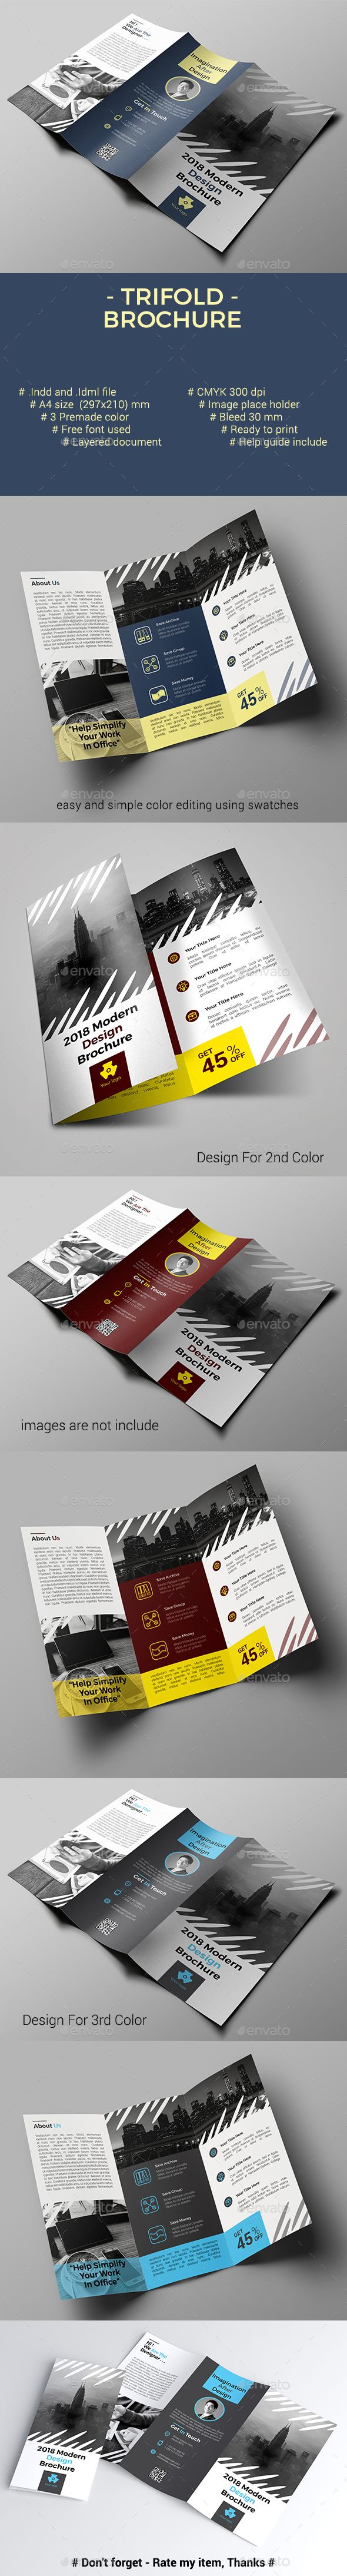 Trifold Brochure #pro #financial  • Download here → https://graphicriver.net/item/trifold-brochure/21203633?ref=pxcr